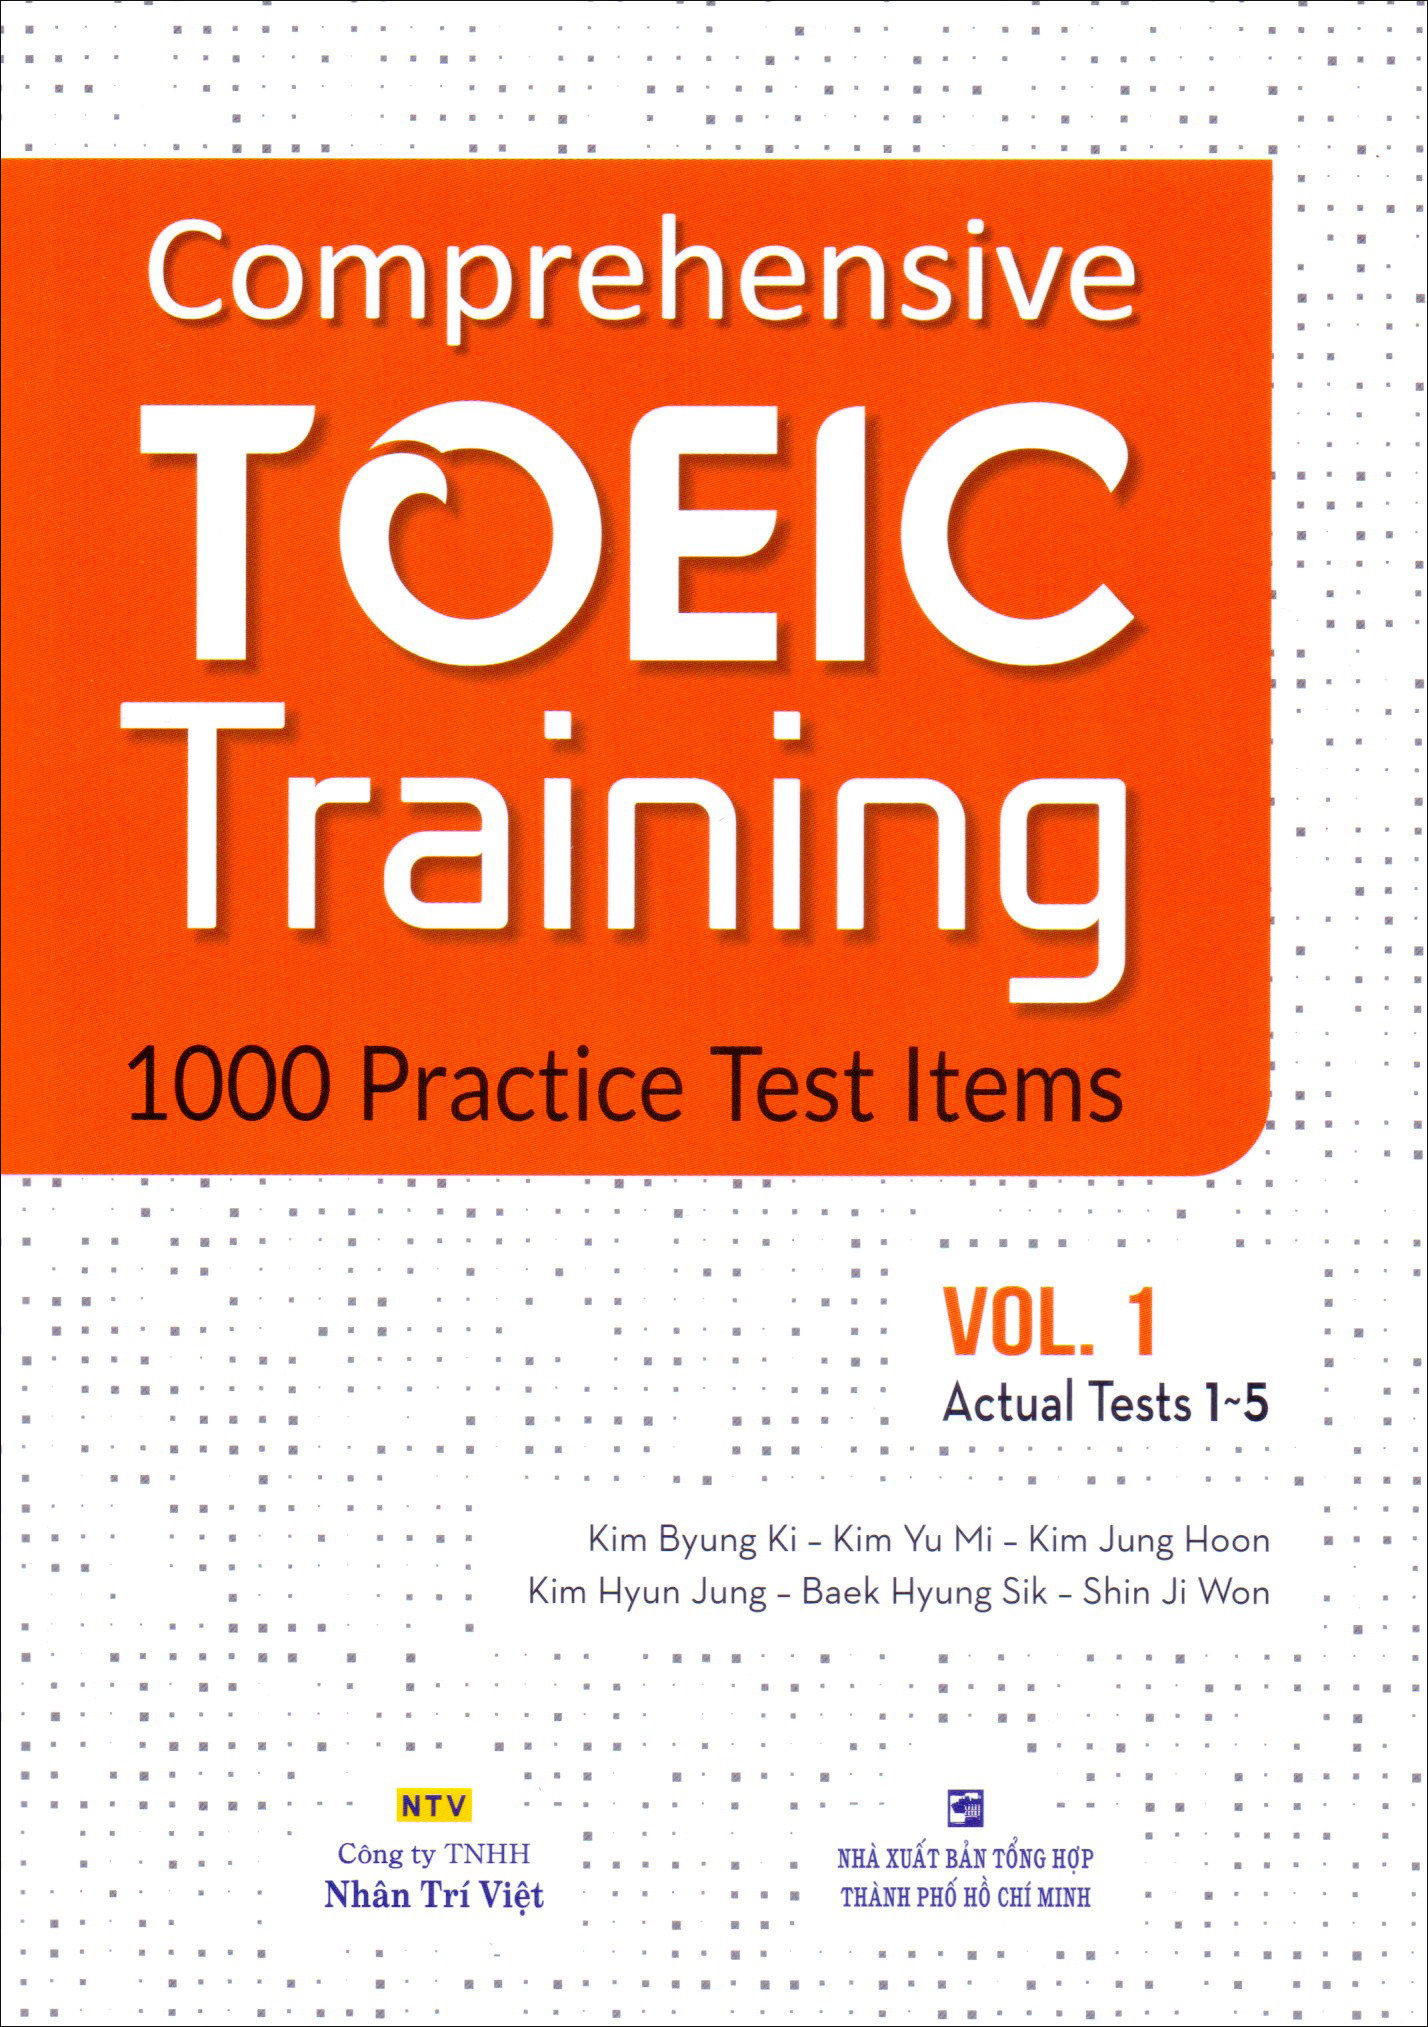 Comprehensive Toeic Training 1000 Practice Test Items (Vol 1) - Kèm CD